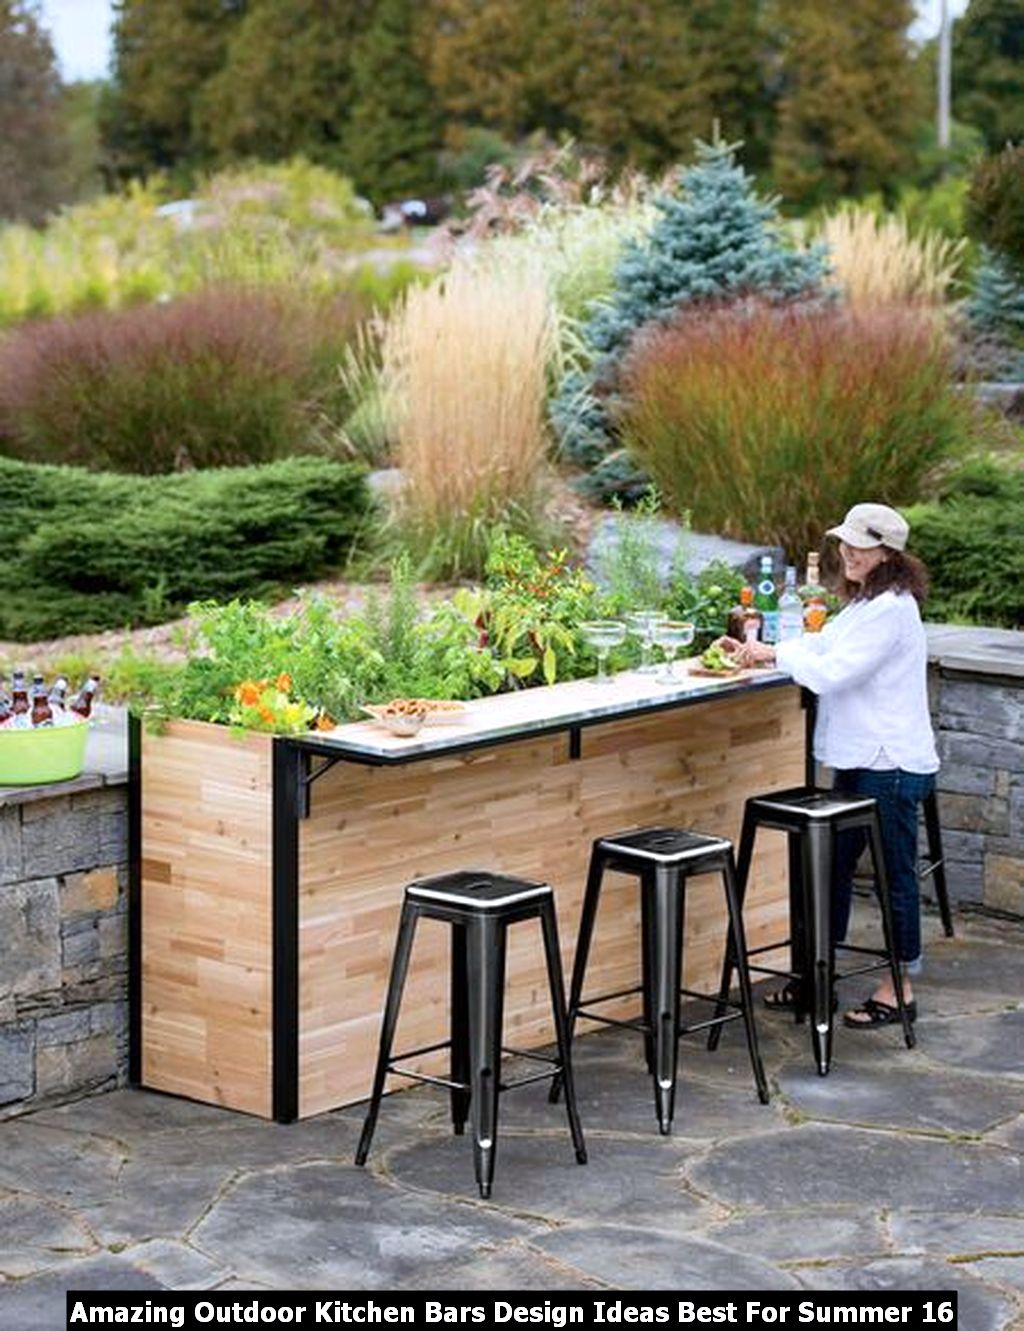 Amazing Outdoor Kitchen Bars Design Ideas Best For Summer 16